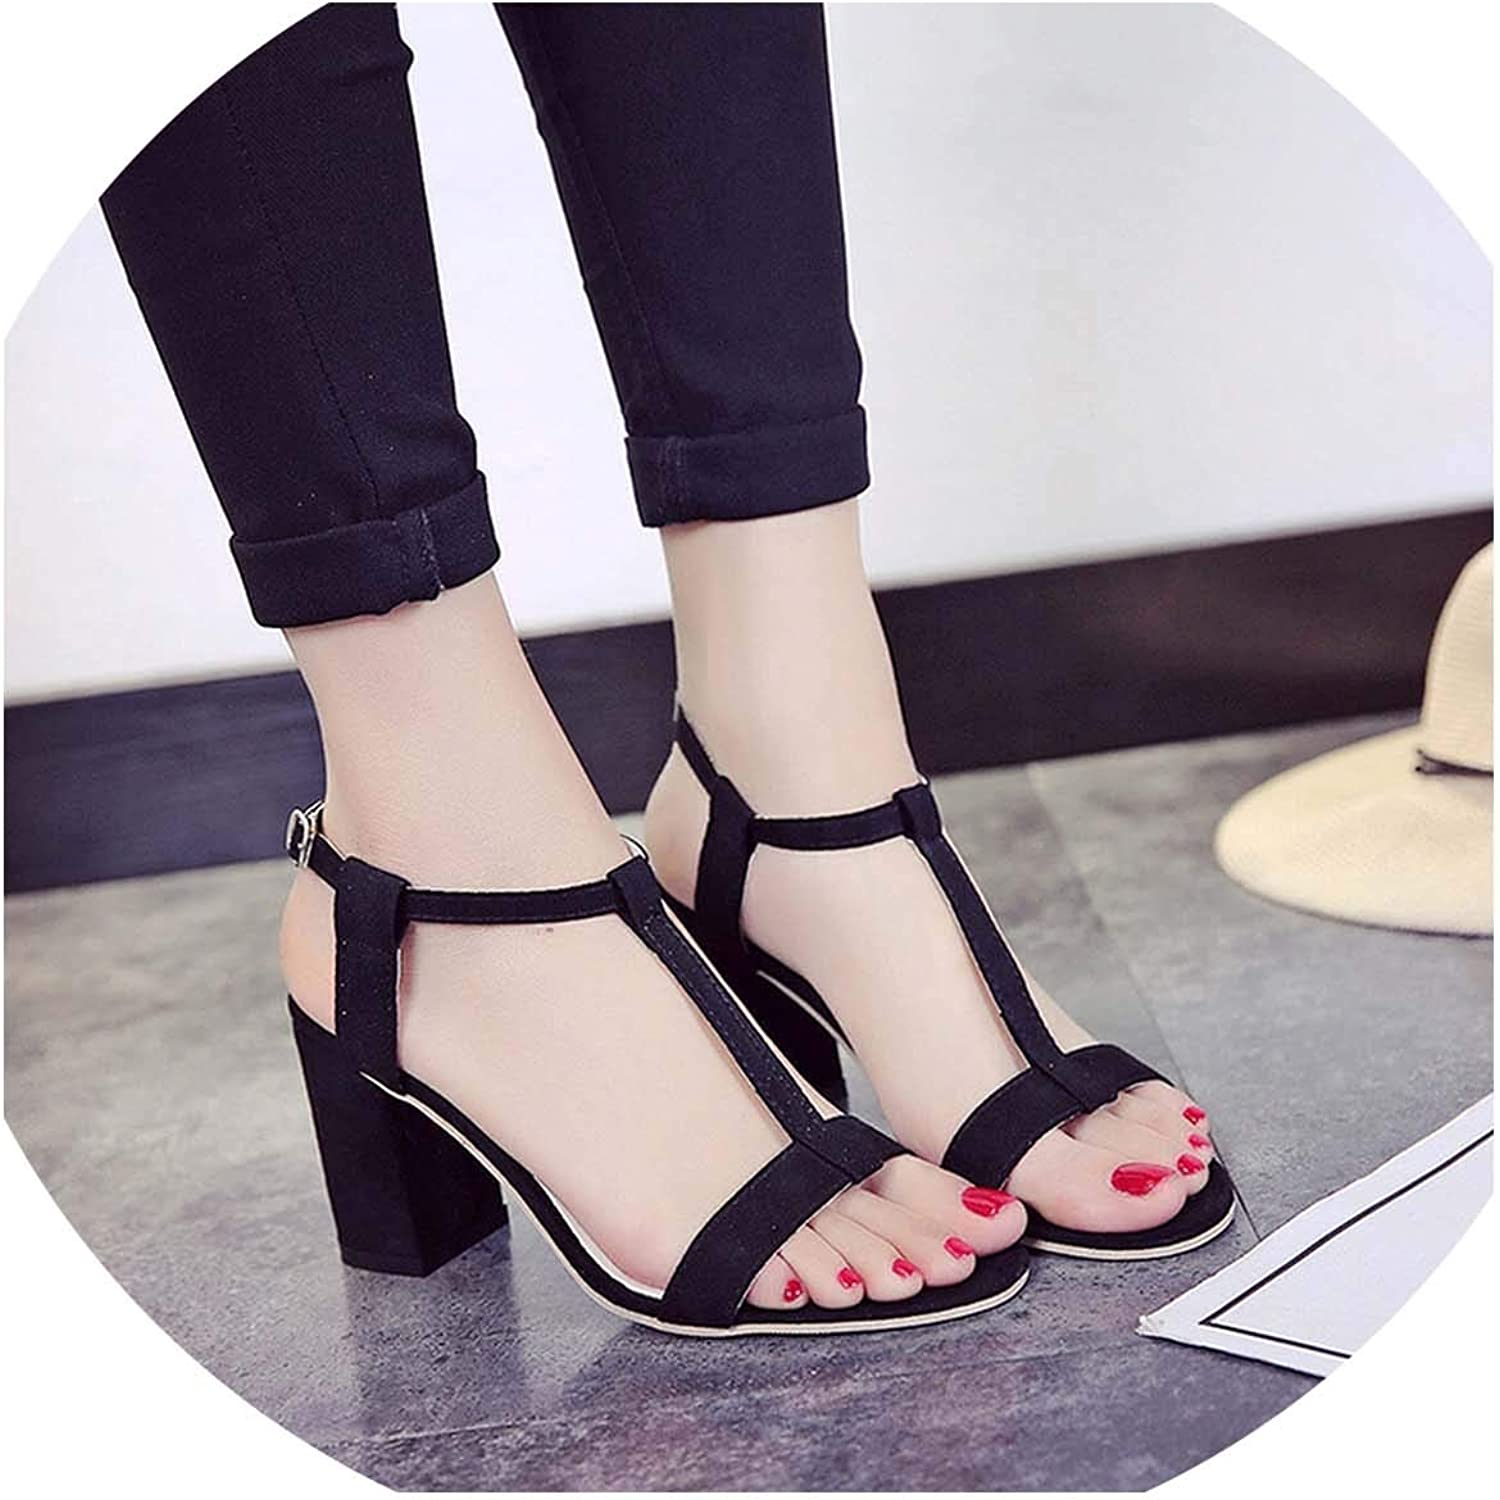 HuangKang Women Sandals Flats Sandals for Women Summer shoes 2019 New Women Open Toe